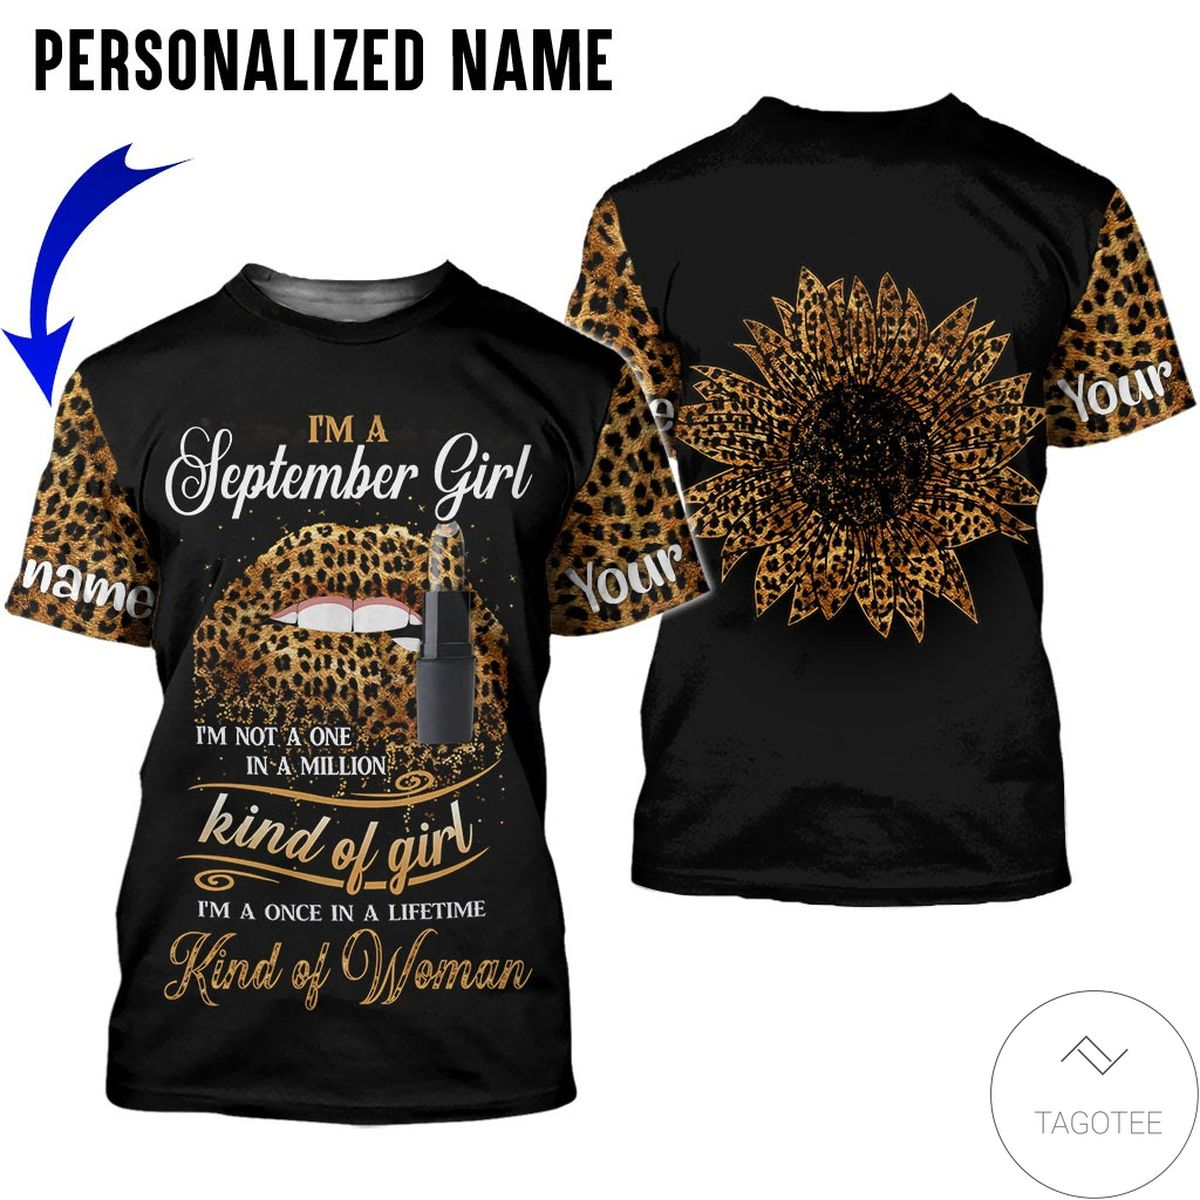 Personalized Name I'm September Girl I'm Not A One In A Million Kind Of Girl All Over Print Hoodiez